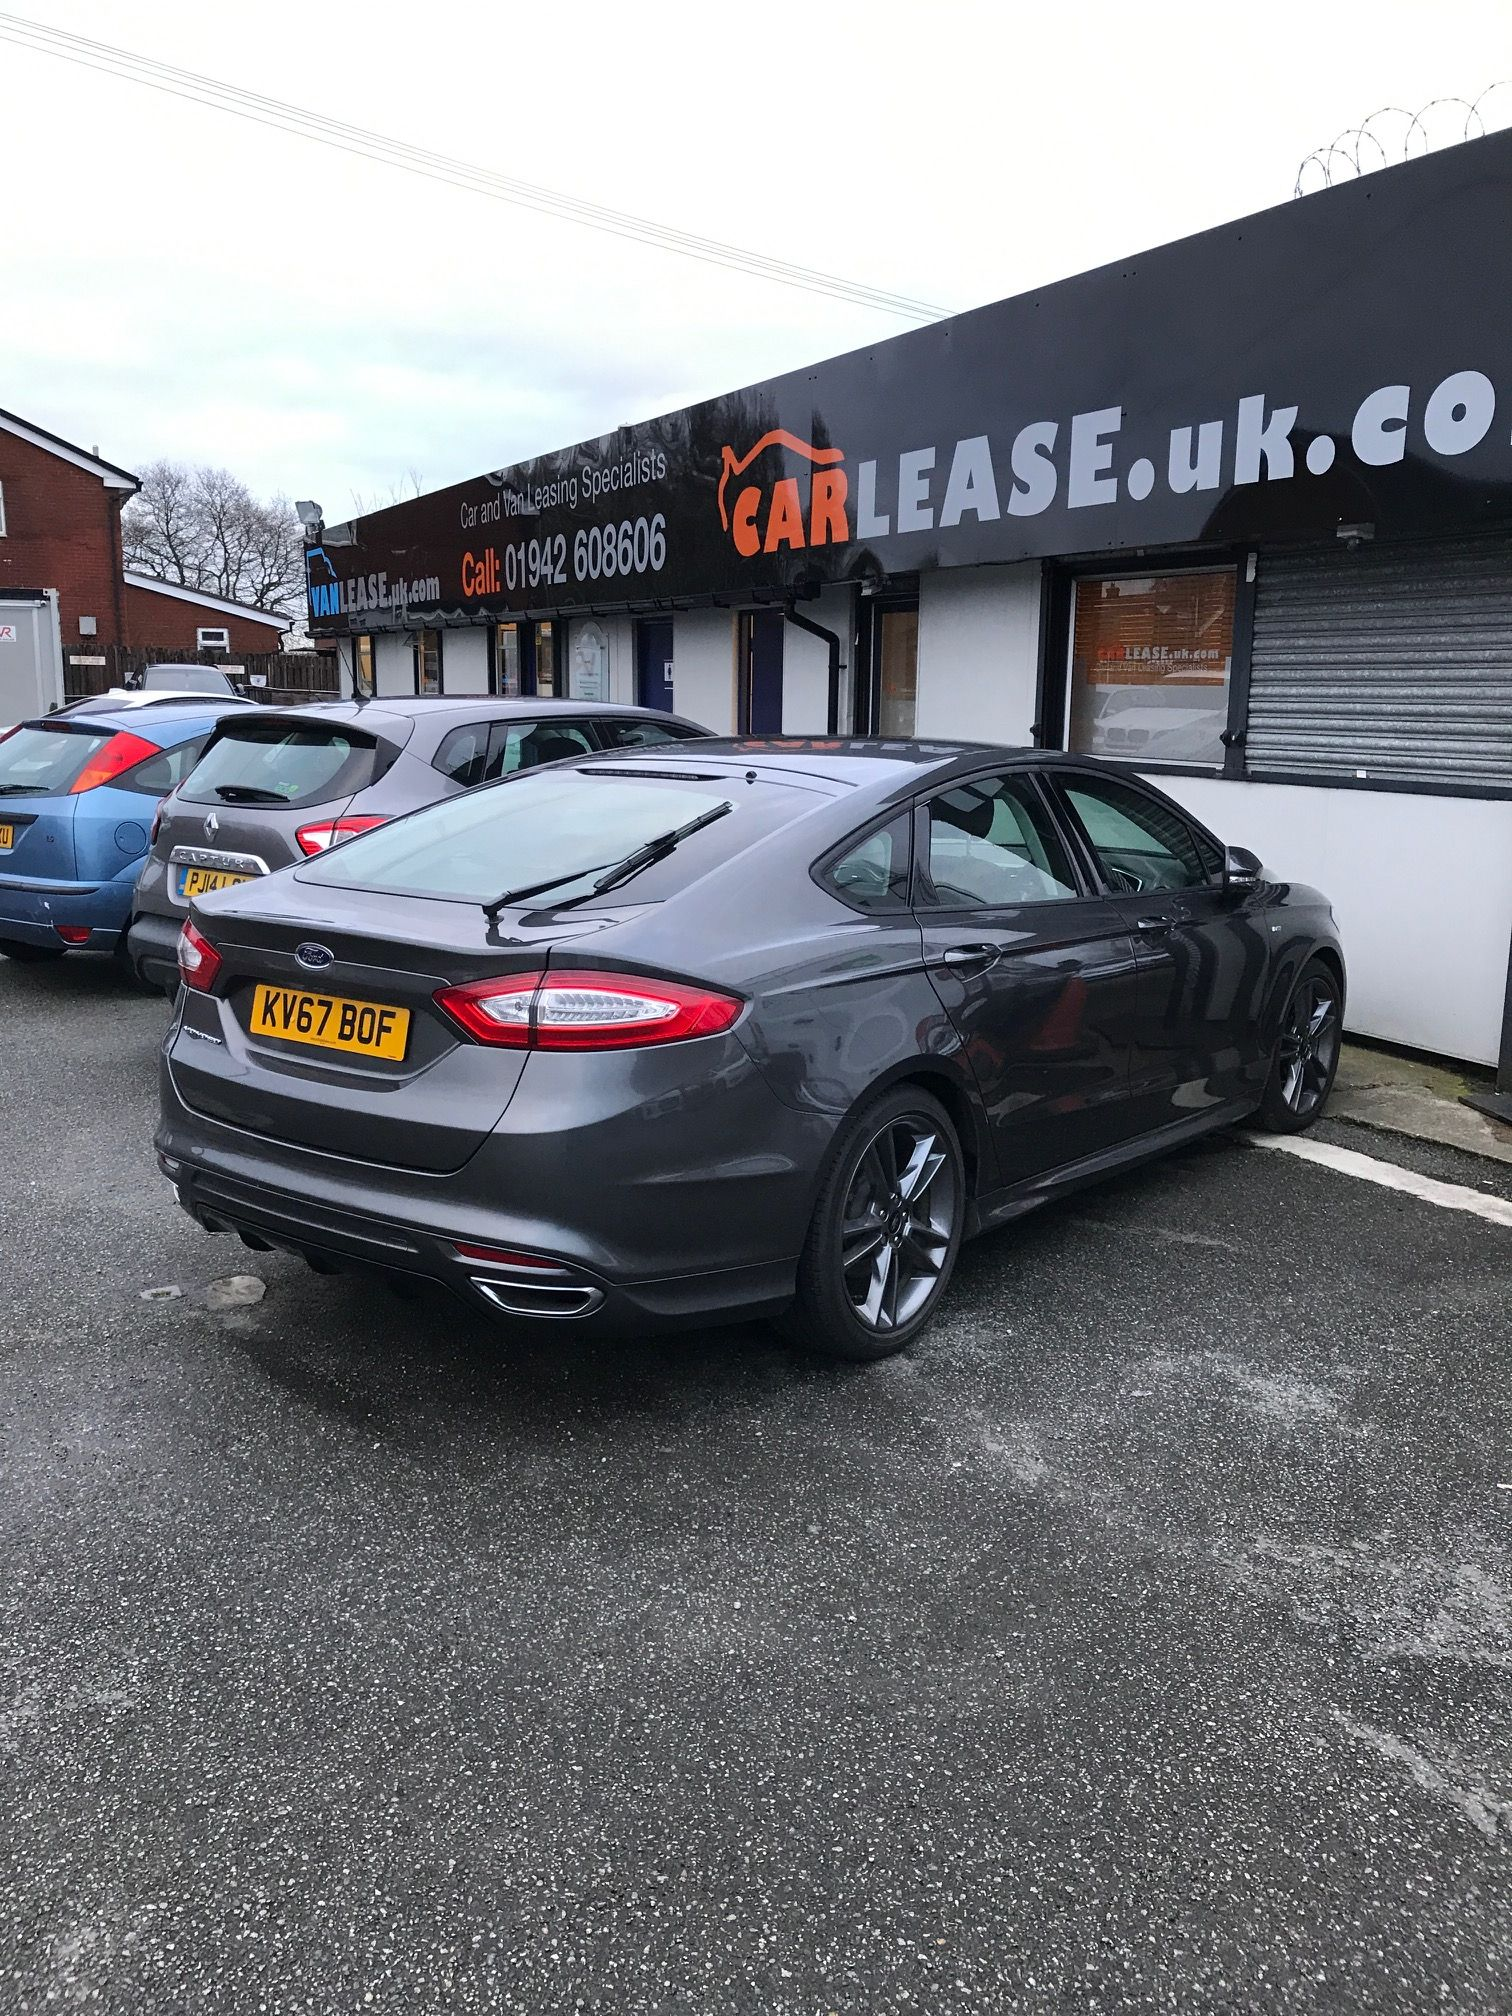 The Ford Mondeo Diesel Hatchback 2 0 Tdci 180 St Line 5dr Powershift Carleasing Cars Ford Car Lease Ford Mondeo Car Deals